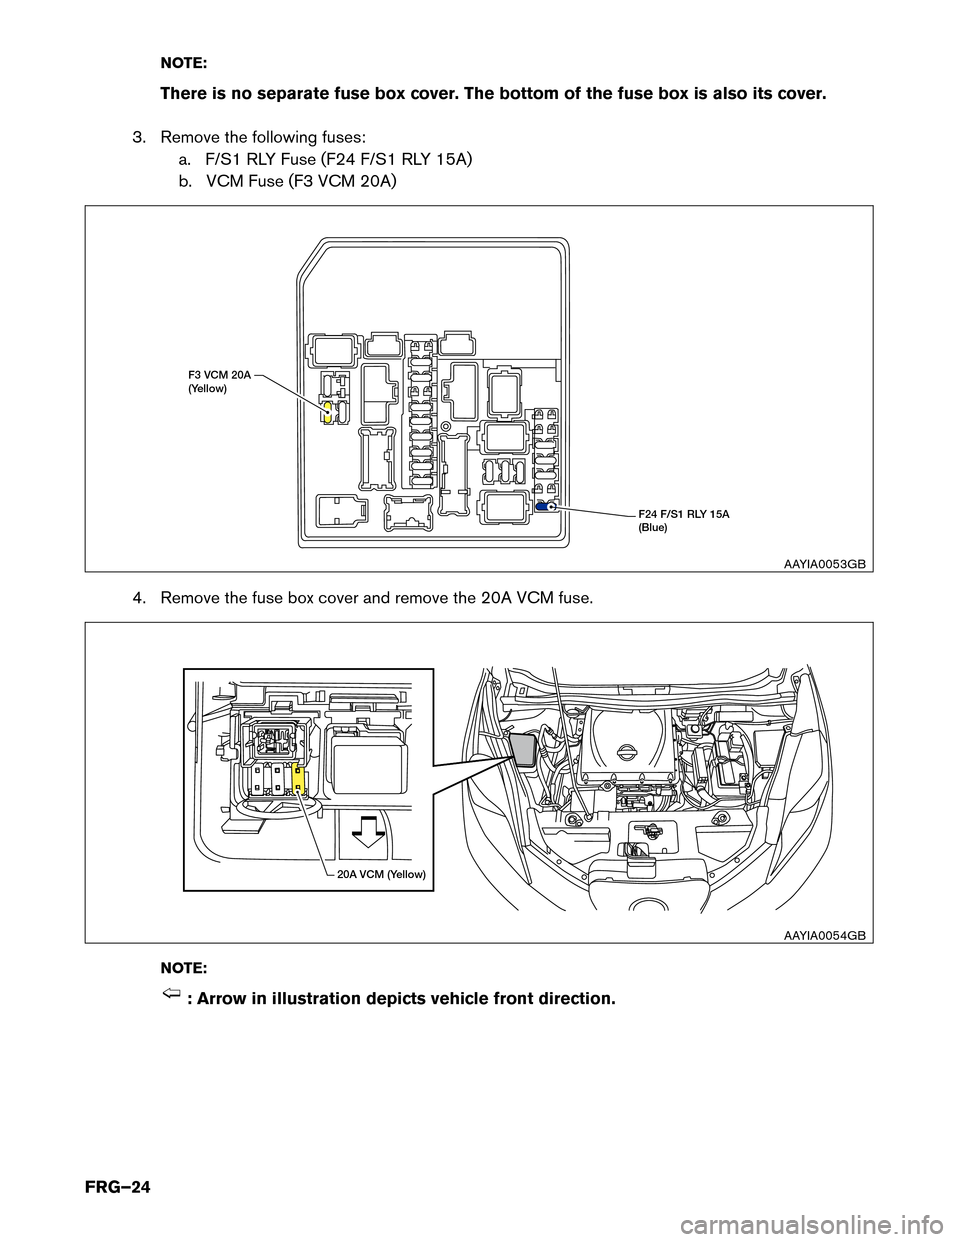 Fuses Nissan Leaf 2017 1g First Responders Guide Fuse Box Cover Page 24 Note There Is No Separate